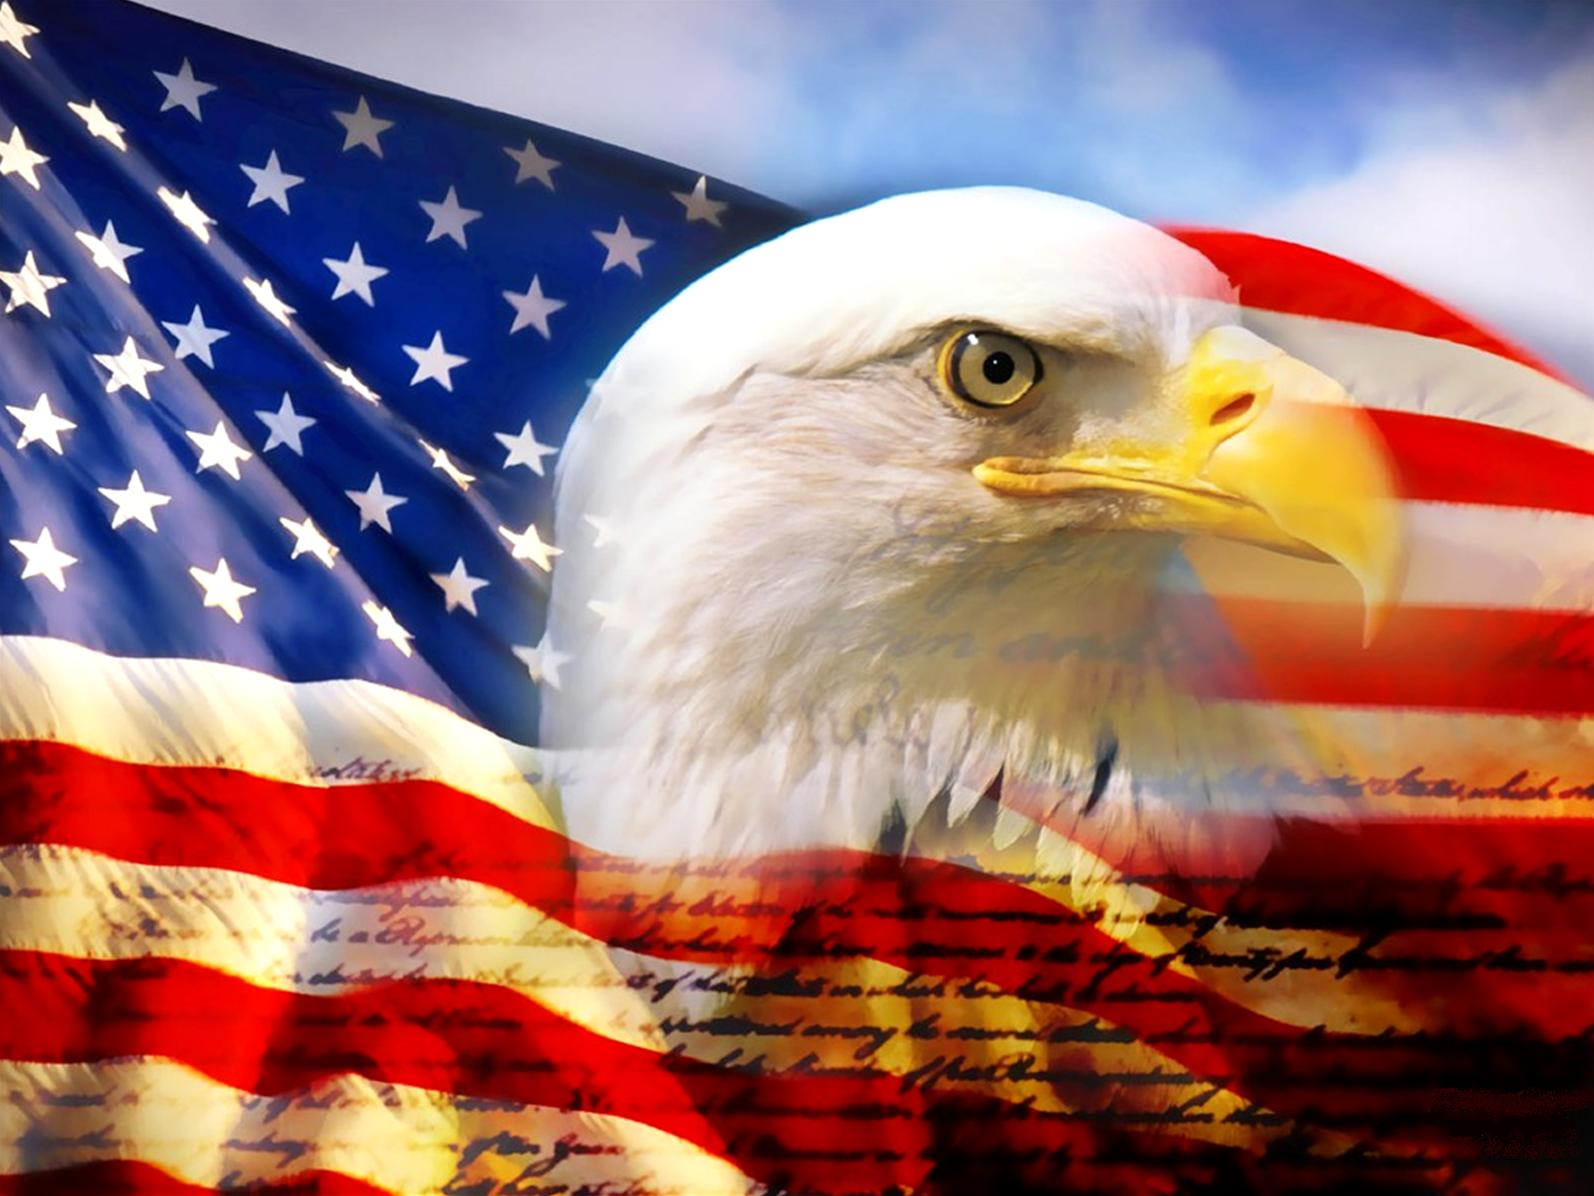 http://1.bp.blogspot.com/_ahoJXwM2zgo/TH8NcfHEYOI/AAAAAAAACJA/n9jN2wWxG-4/s1600/bald_eagle_head_and_american_flag1.jpg